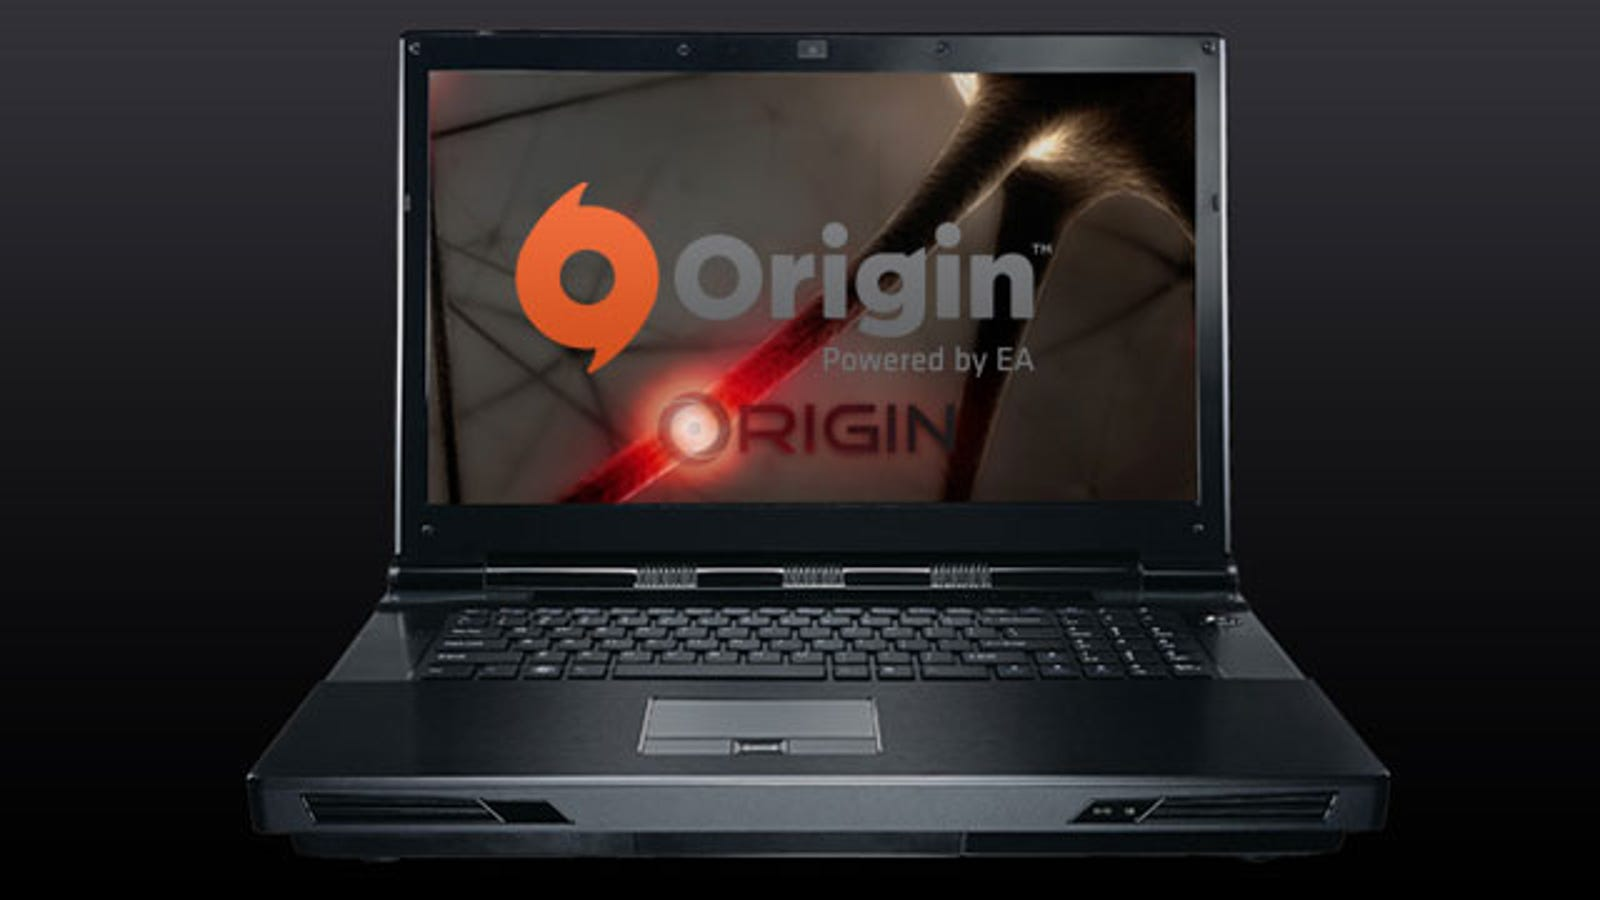 There Seems To Be a Little Confusion Between Origin and Origin